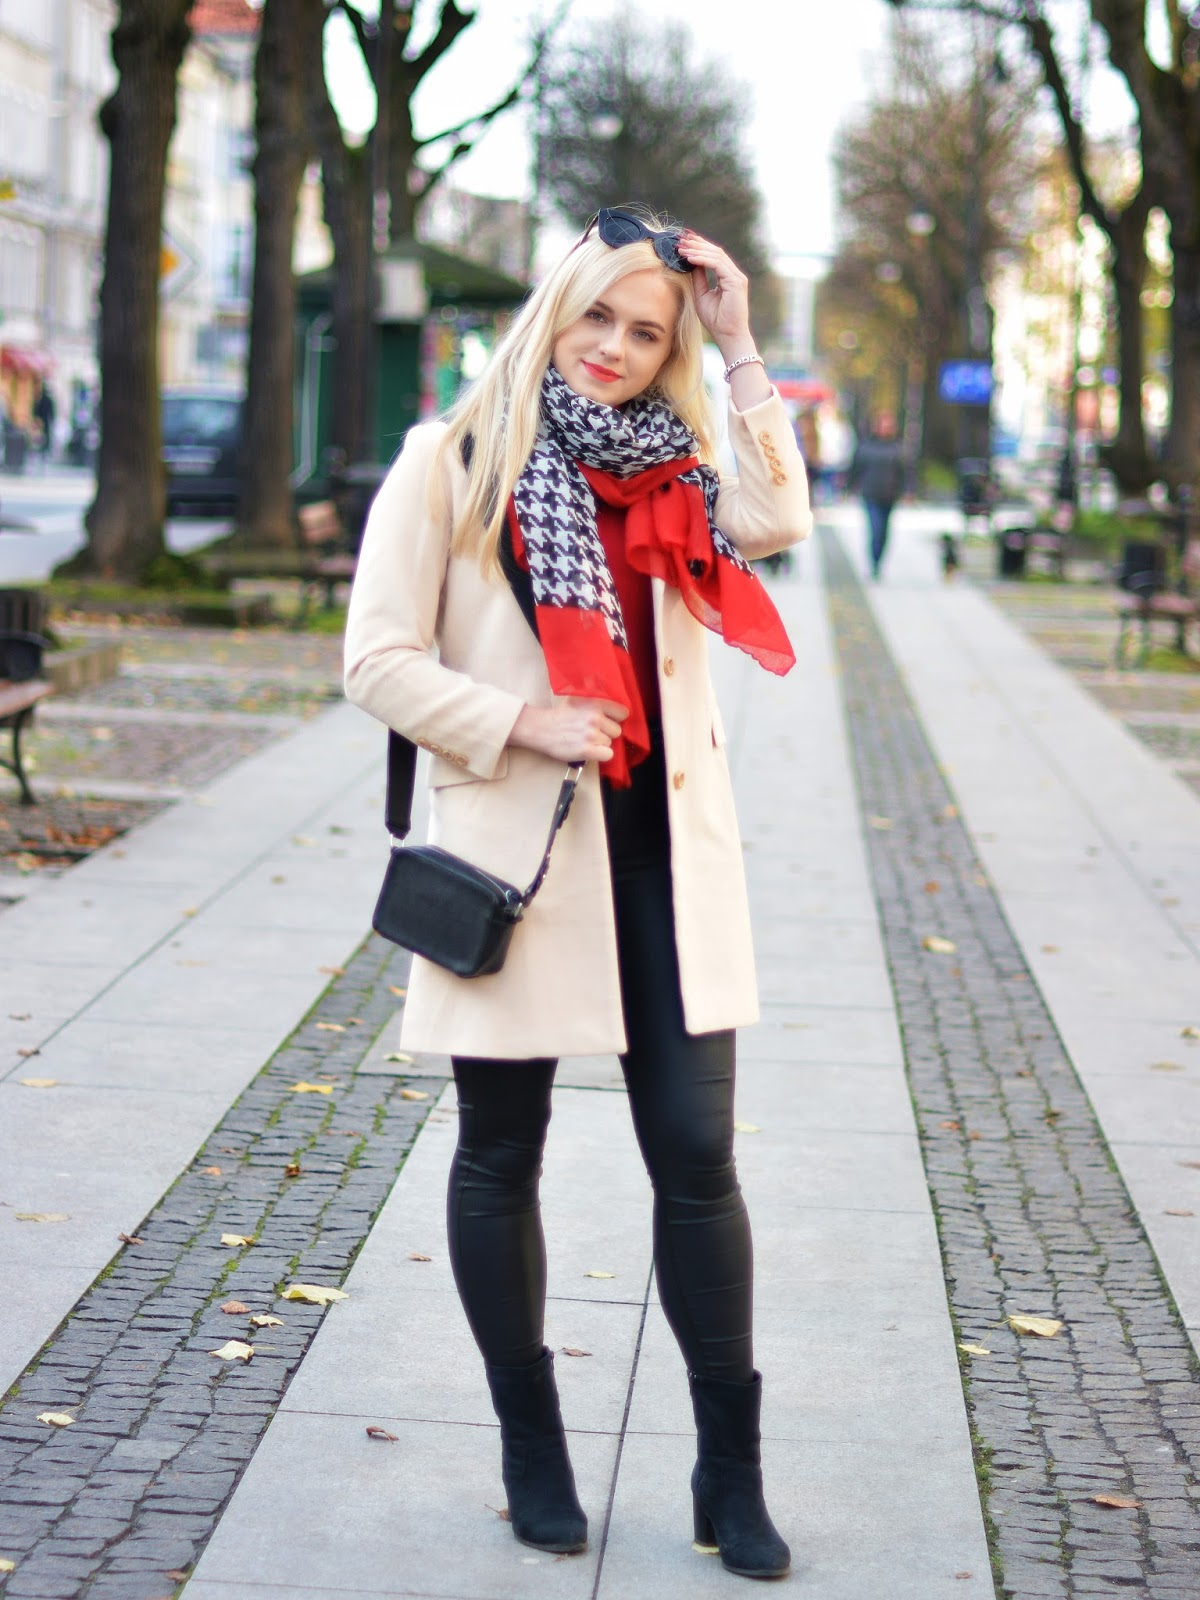 beige coat outfit